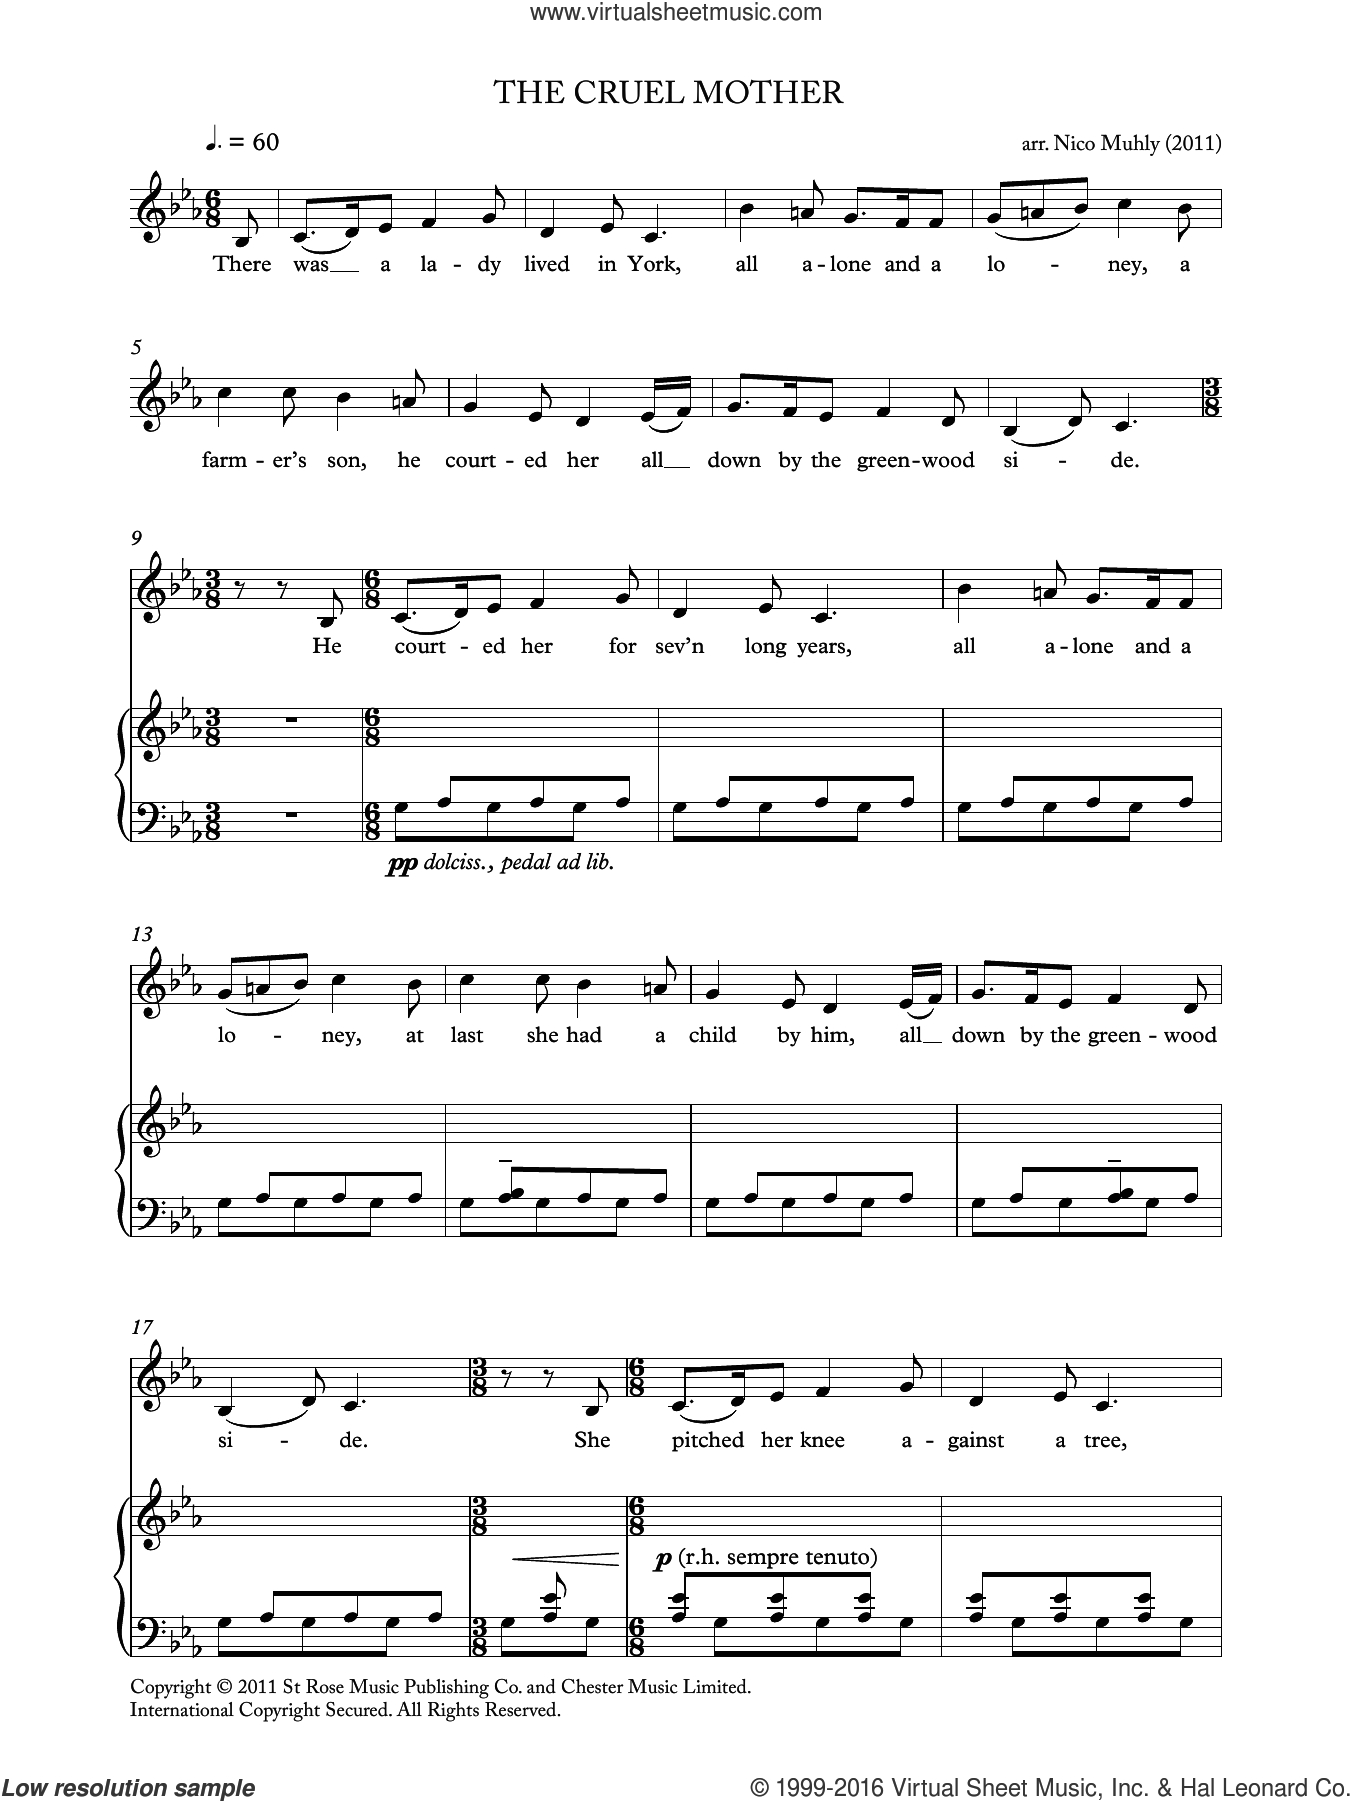 The Cruel Mother (from 'Four Traditional Songs') sheet music for voice, piano or guitar by Nico Muhly